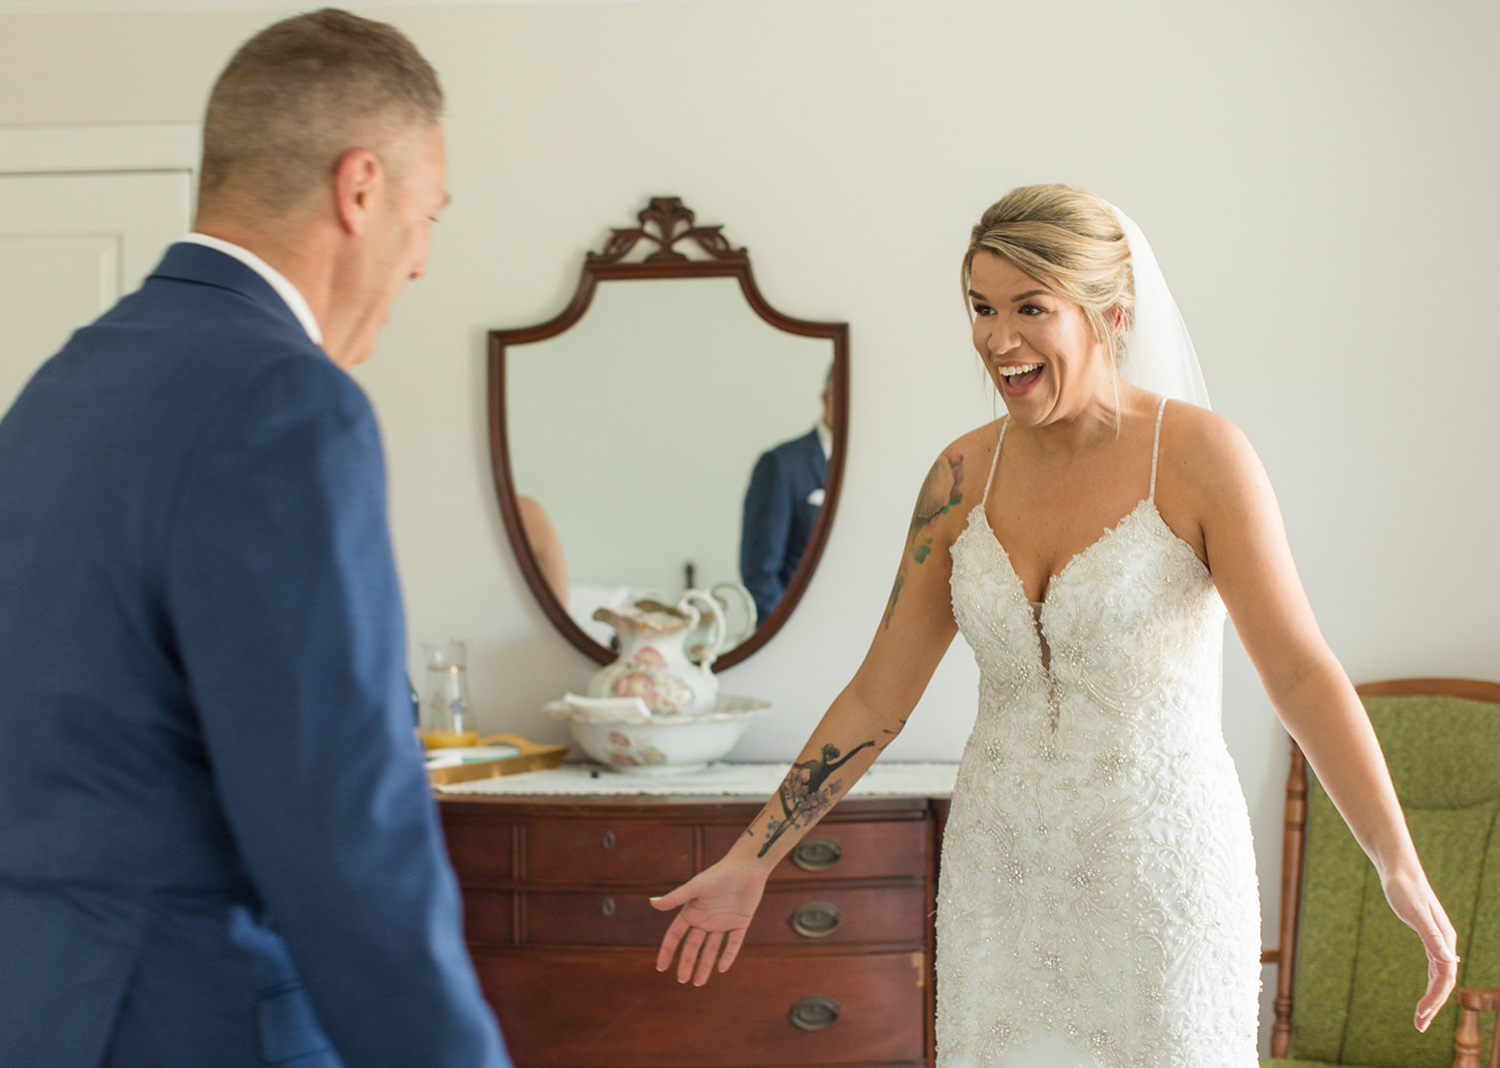 father of the bride sees his daughter in a wedding dress for the first time